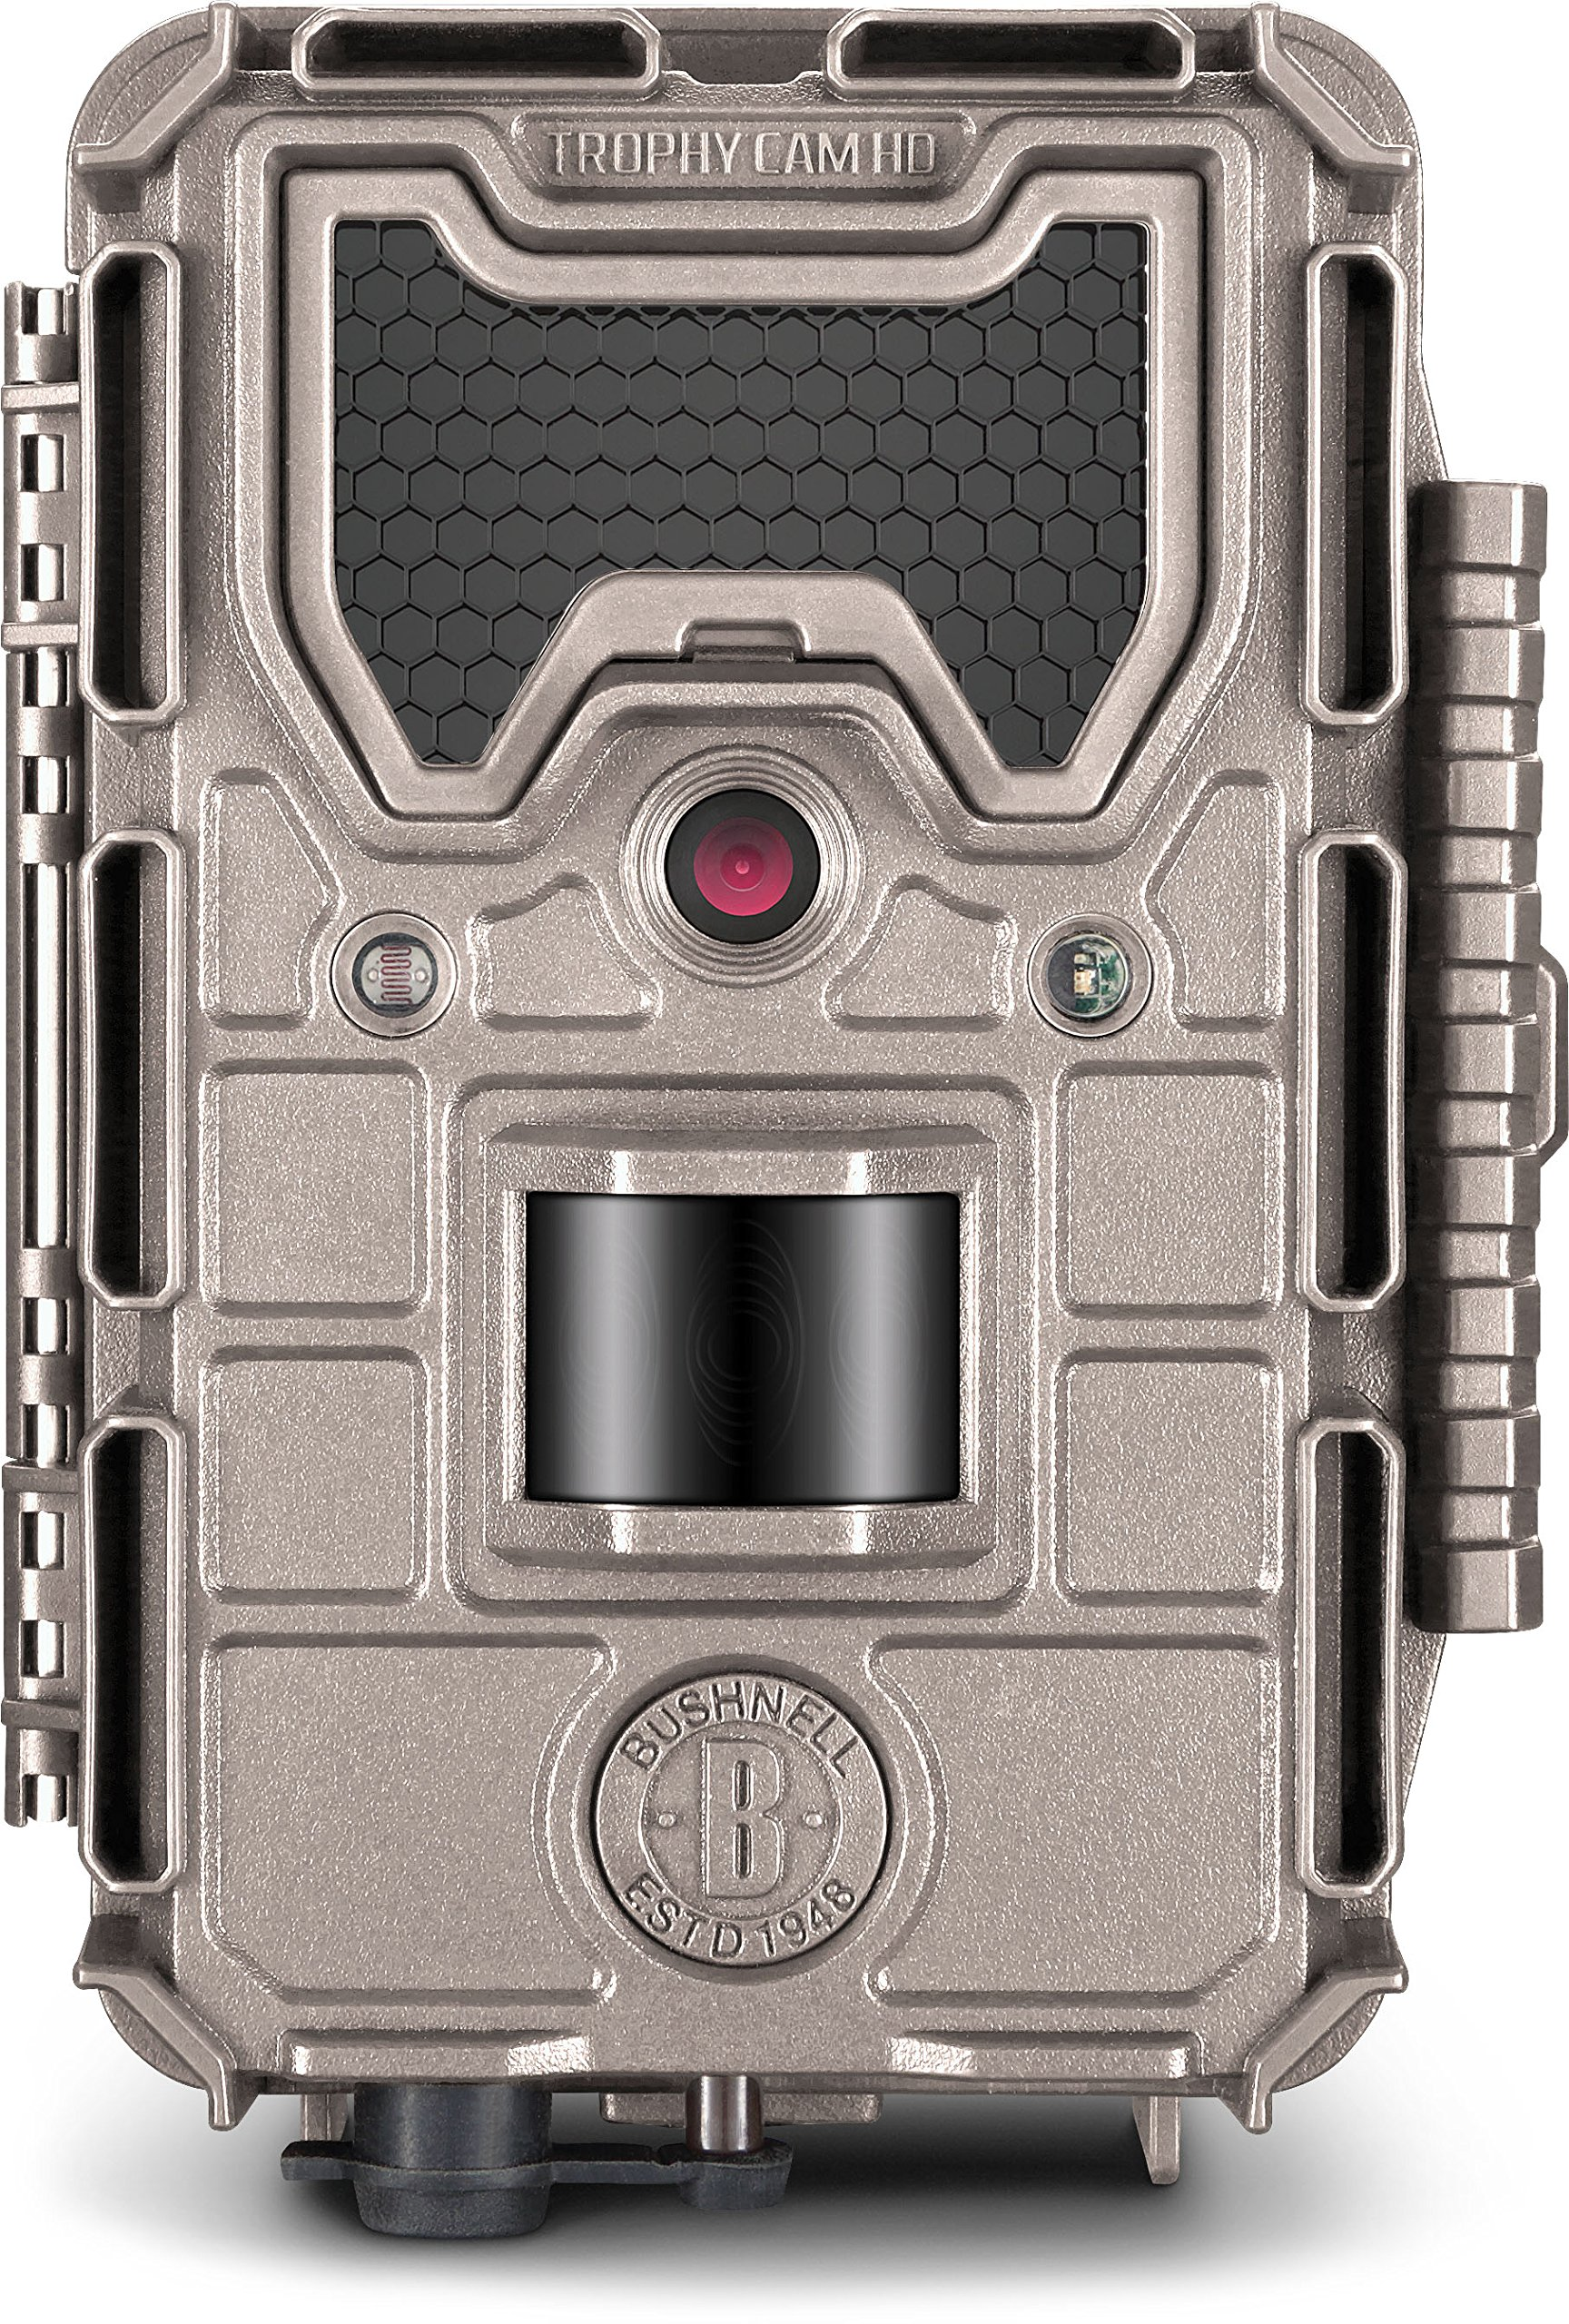 Bushnell 119876C Trophy Cam Aggressor HD Camera, 20 Megapixel, No Glow, Tan by Bushnell (Image #1)